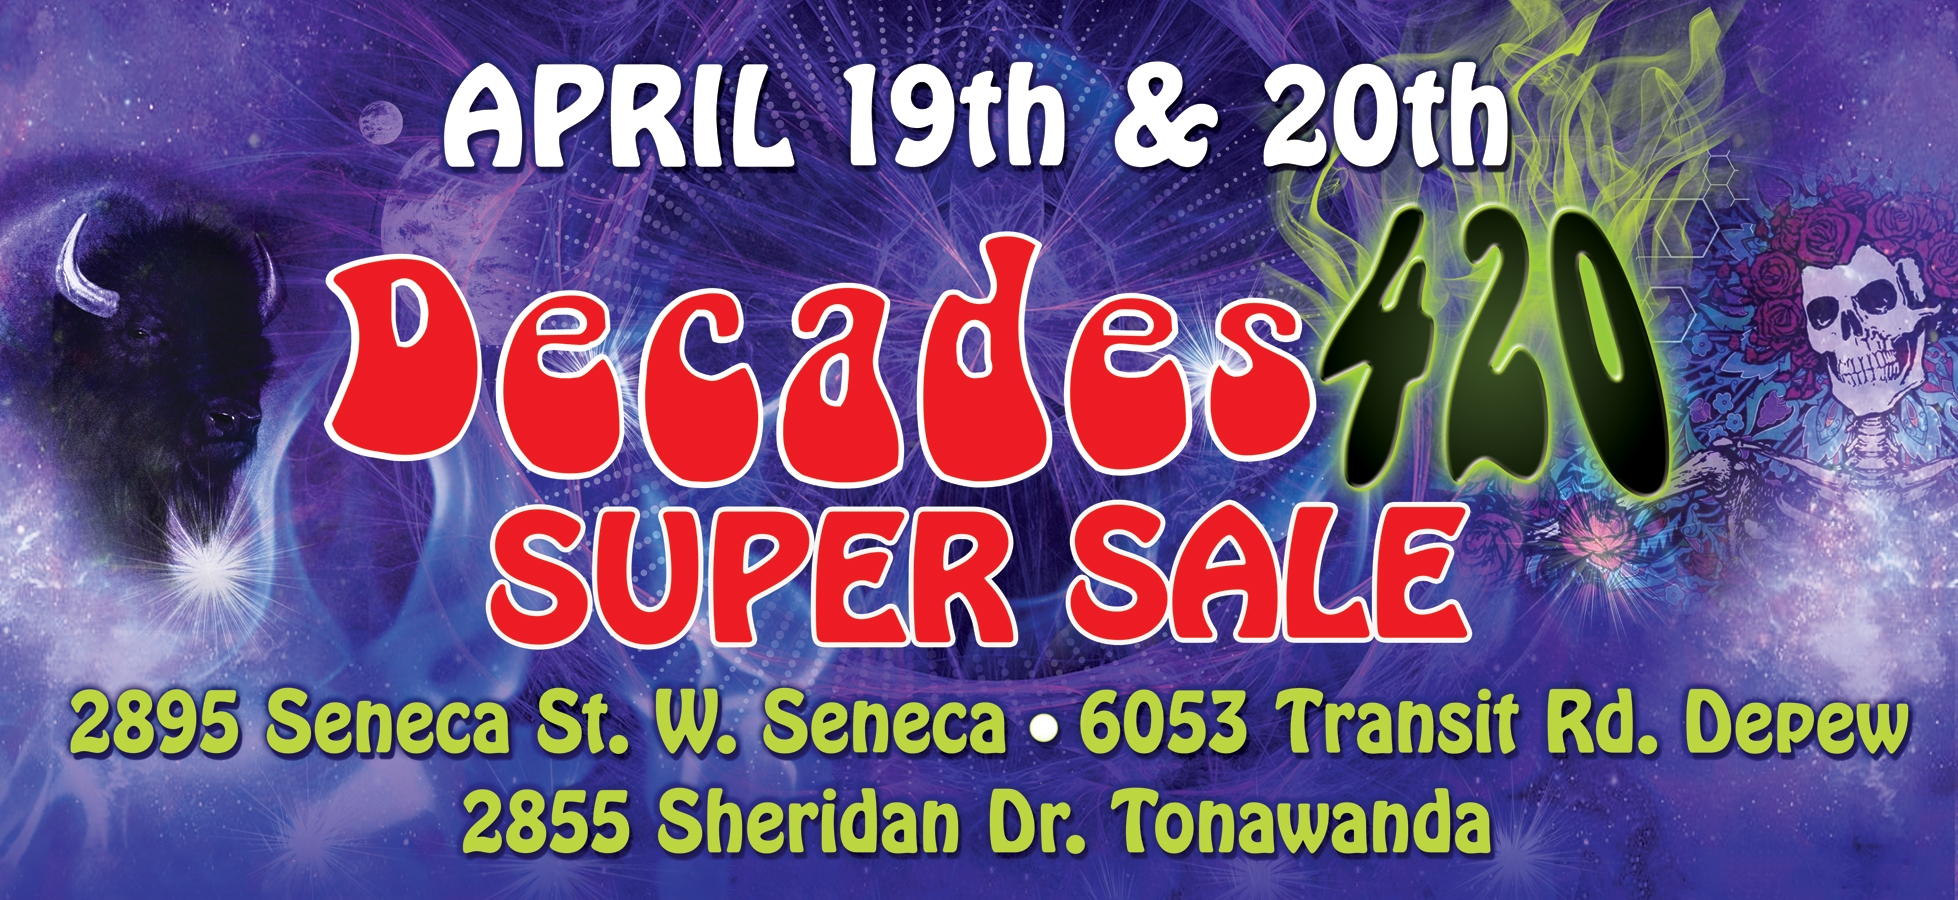 Decades_420SuperSale_Poster_BR2